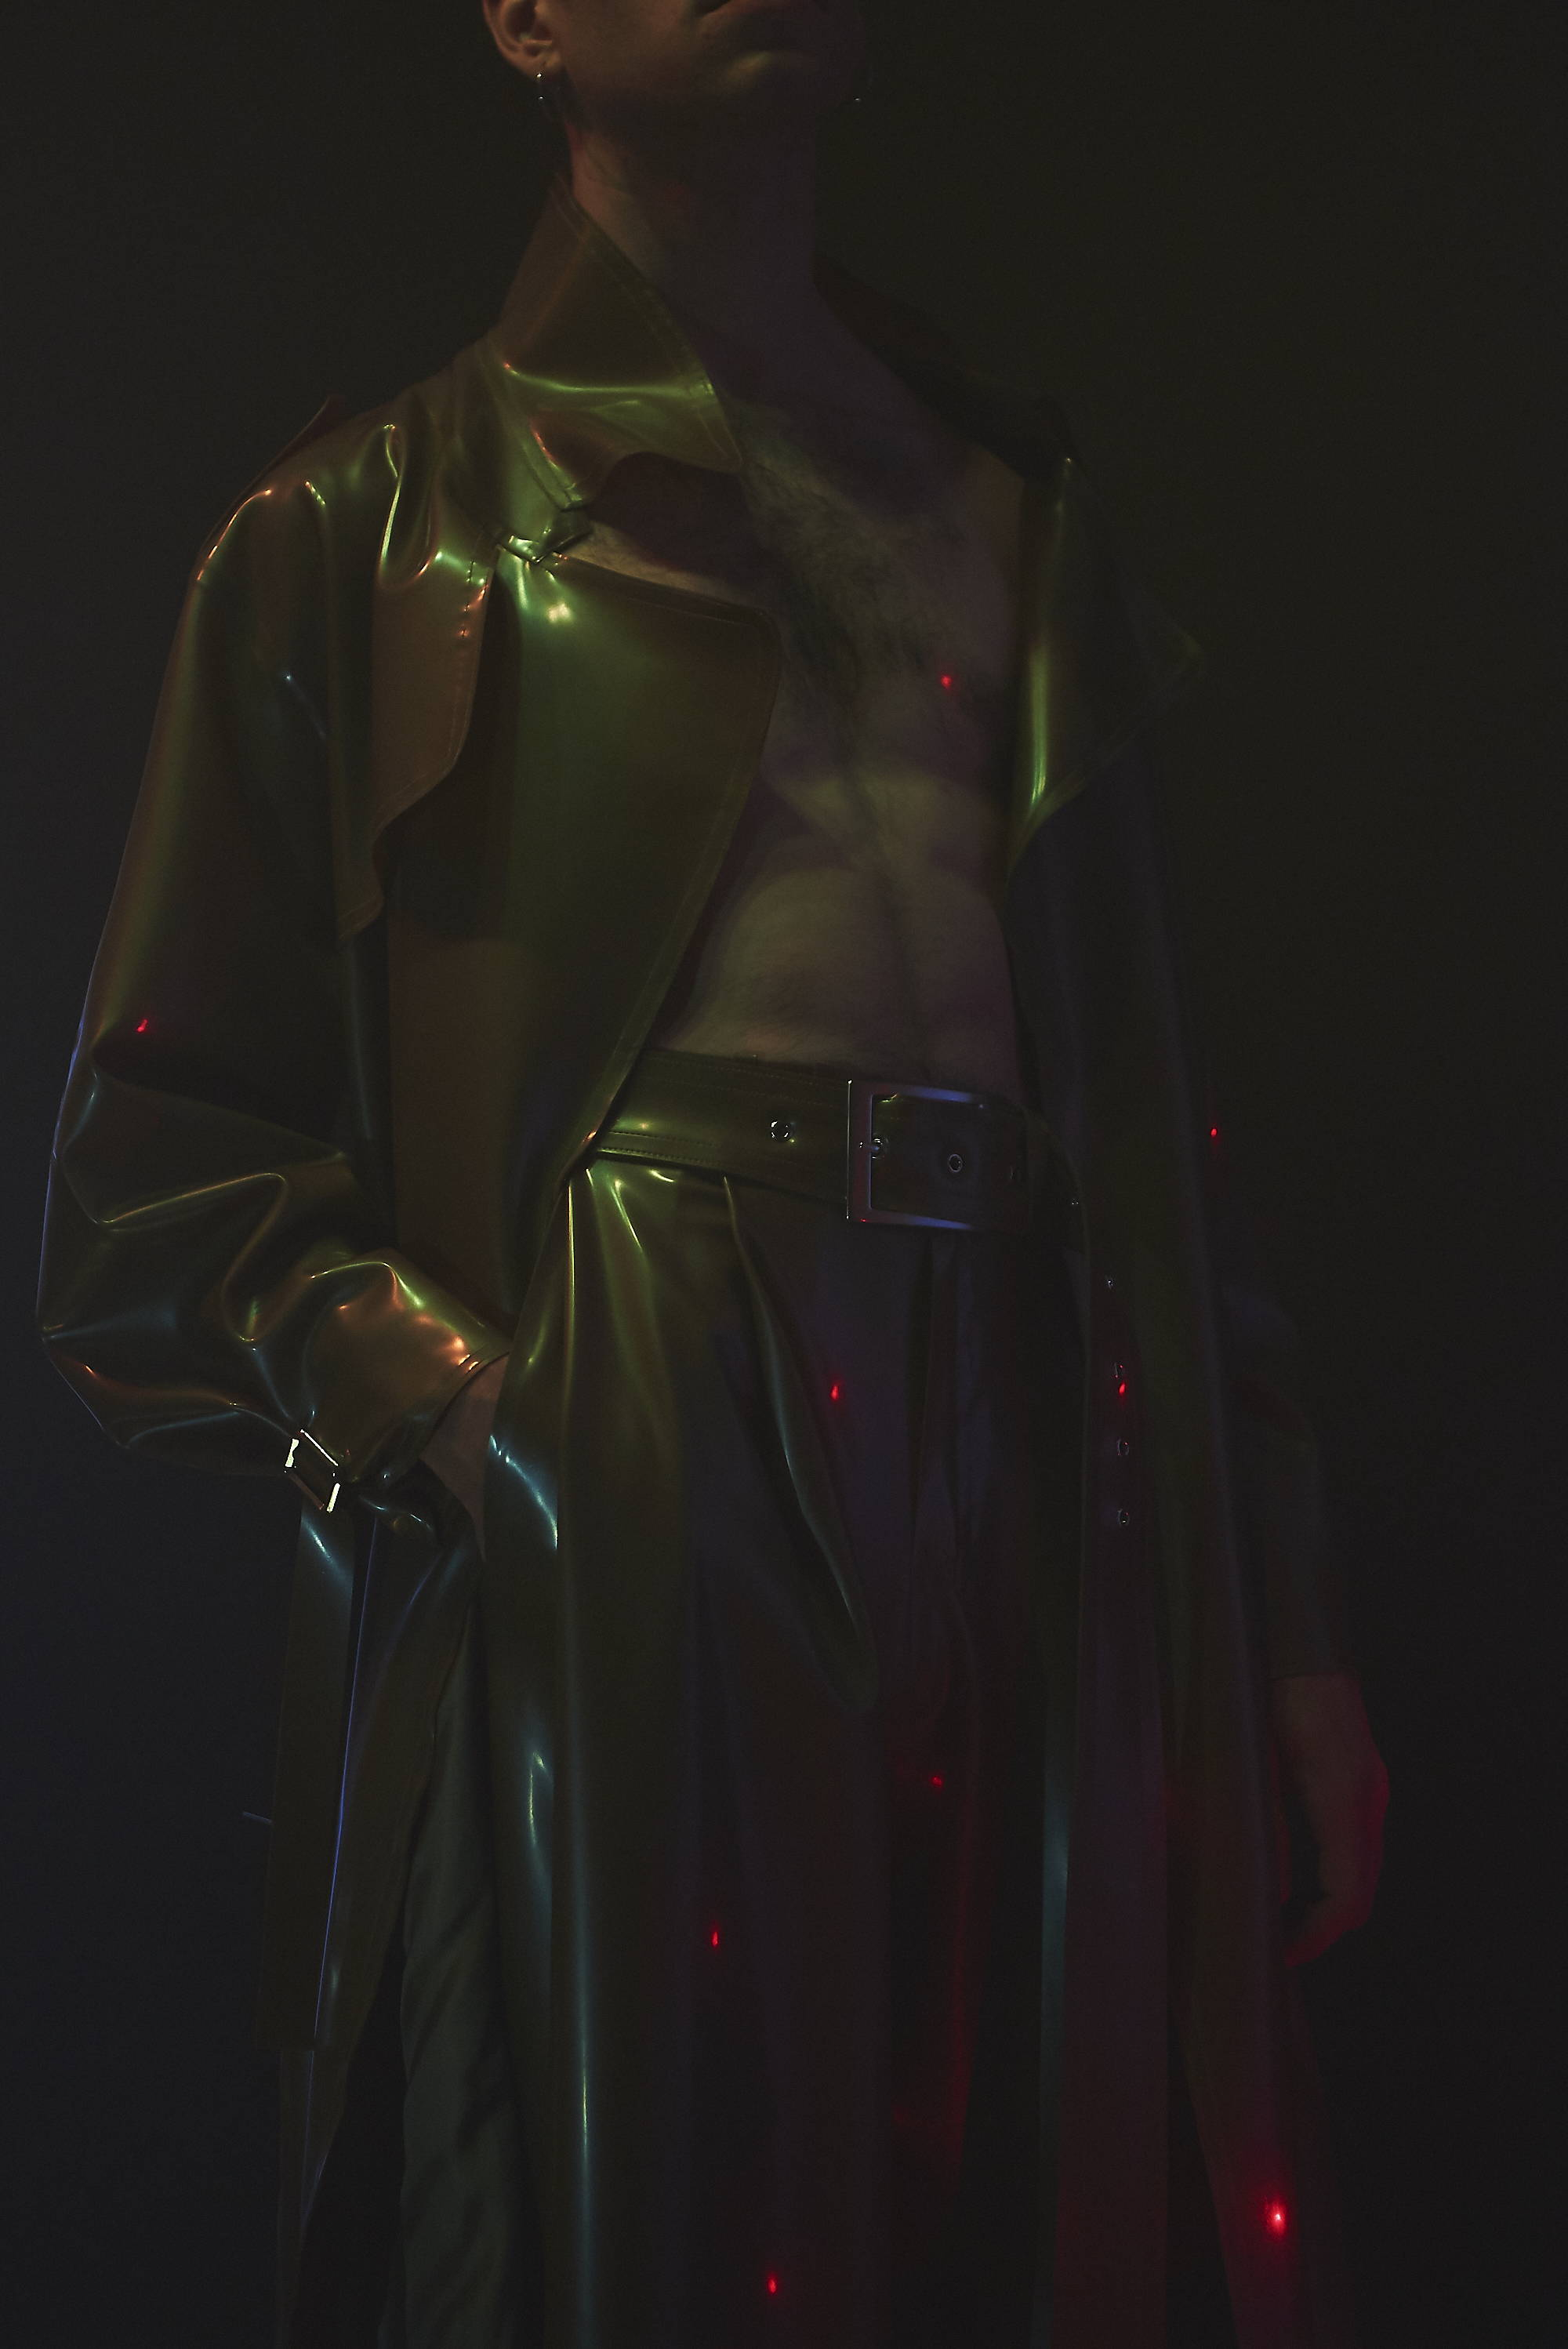 latex trench and flared trouser by arthur avellano for h lorenzo spring summer 17